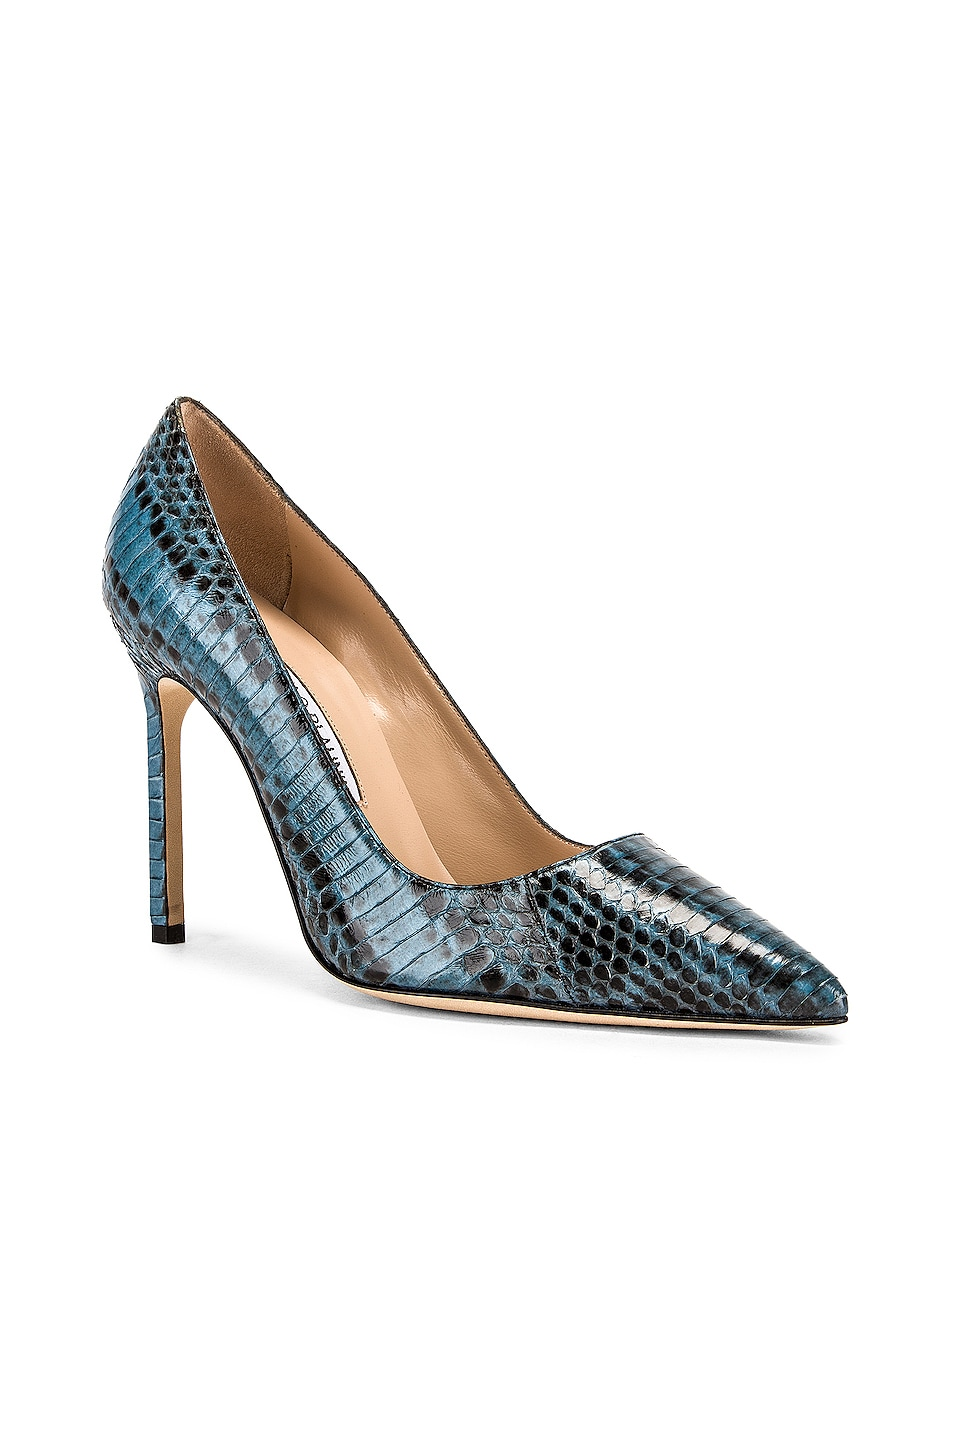 Image 2 of Manolo Blahnik BB 105 Pump in Blue Snake